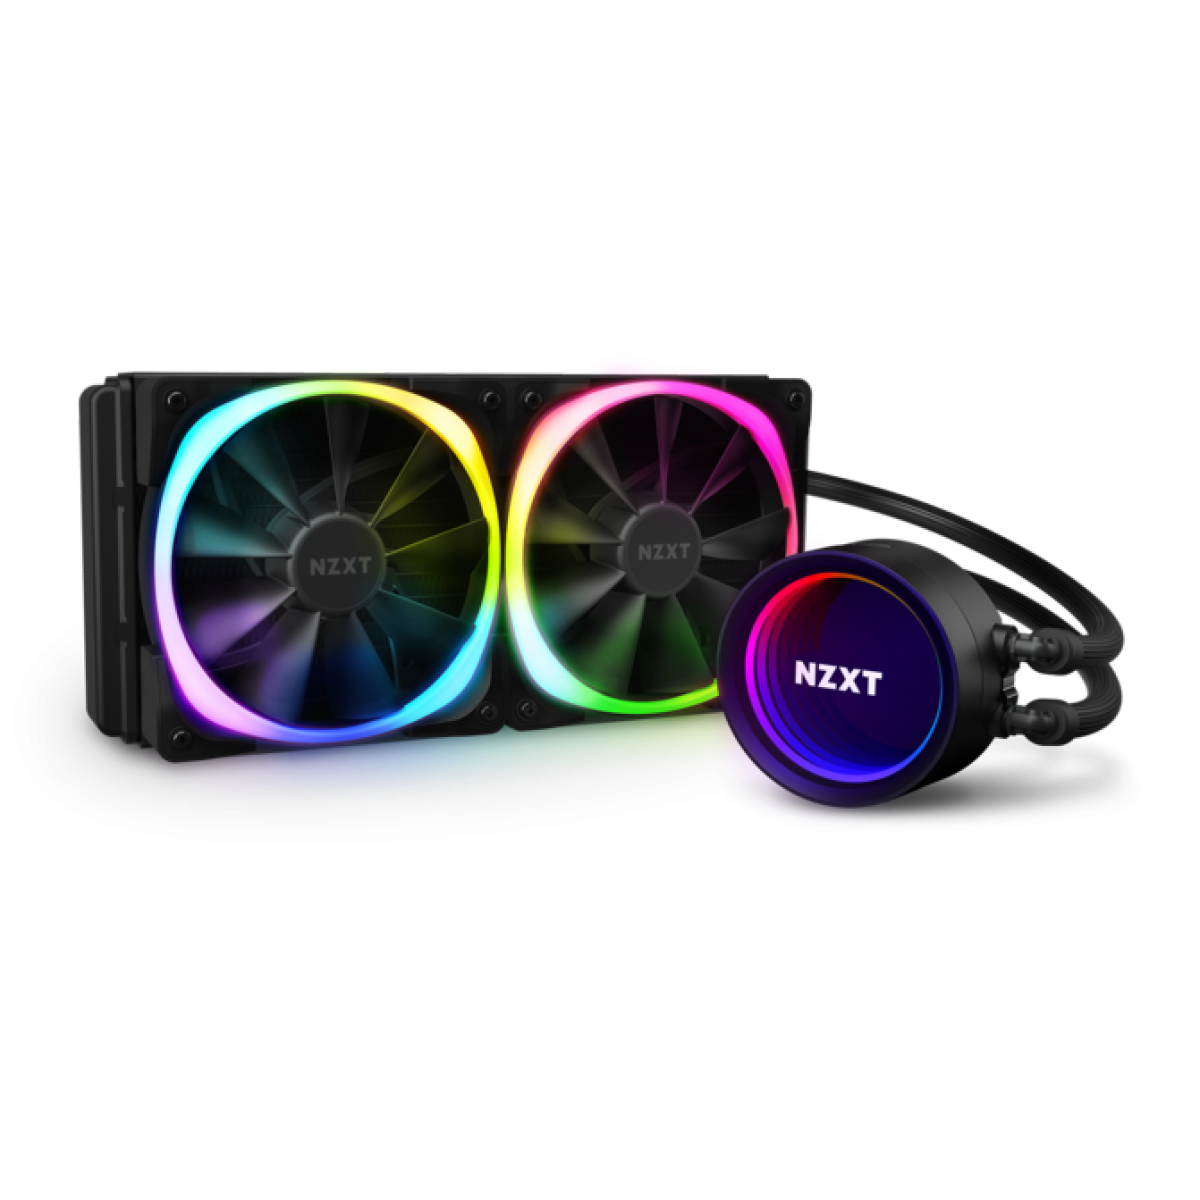 Water Cooler NZXT Kraken X53 RGB, 240mm, Intel-AMD, RL-KRX53-R1